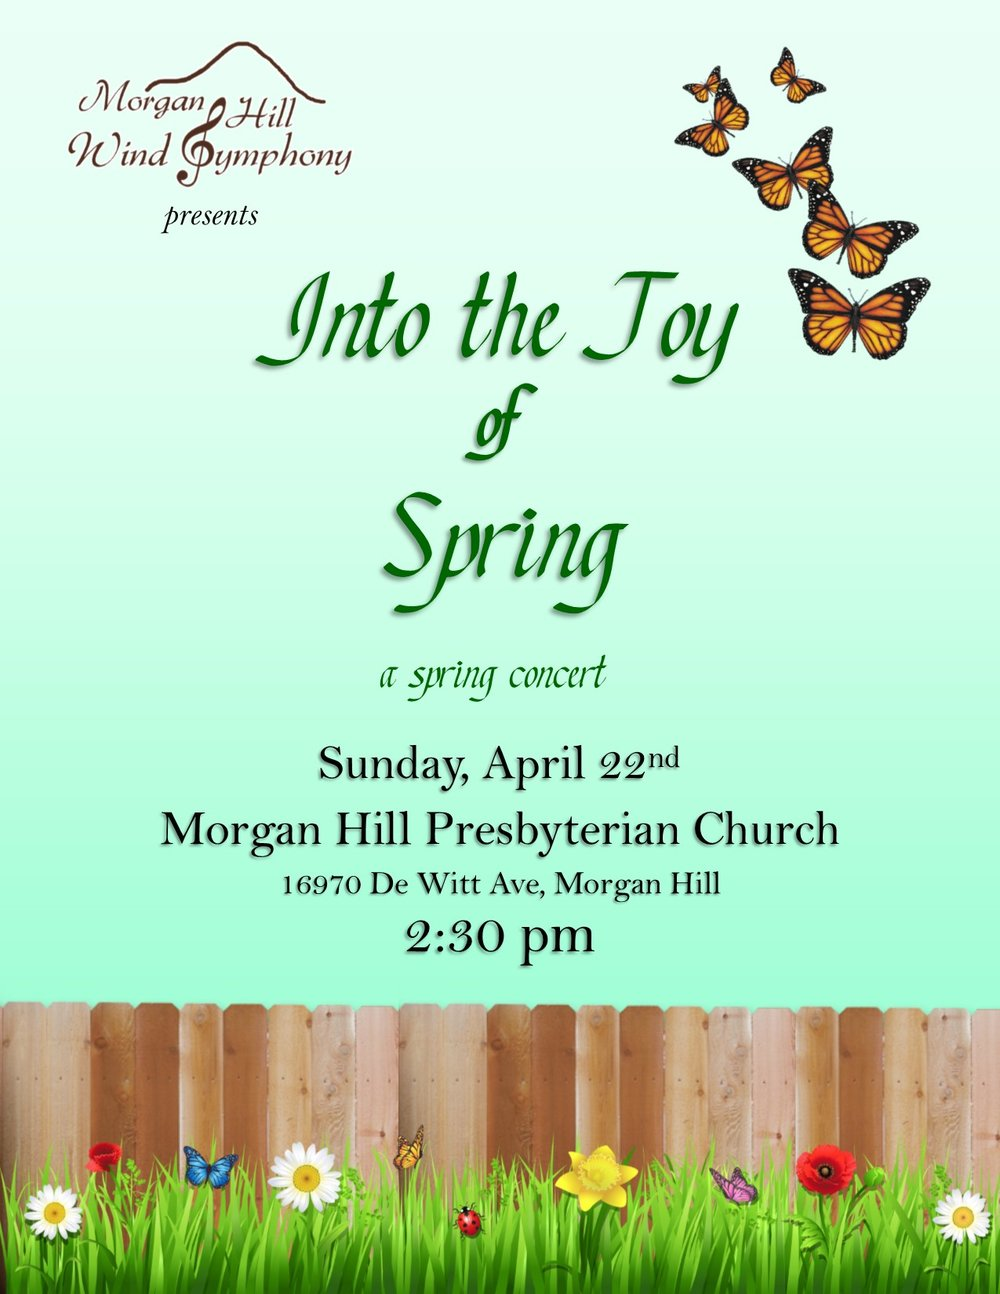 Into the Joy of Spring - Sunday, April 22nd, 2018 at 2:30 PMMorgan Hill Presbyterian Church16970 De Witt Ave, Morgan Hill